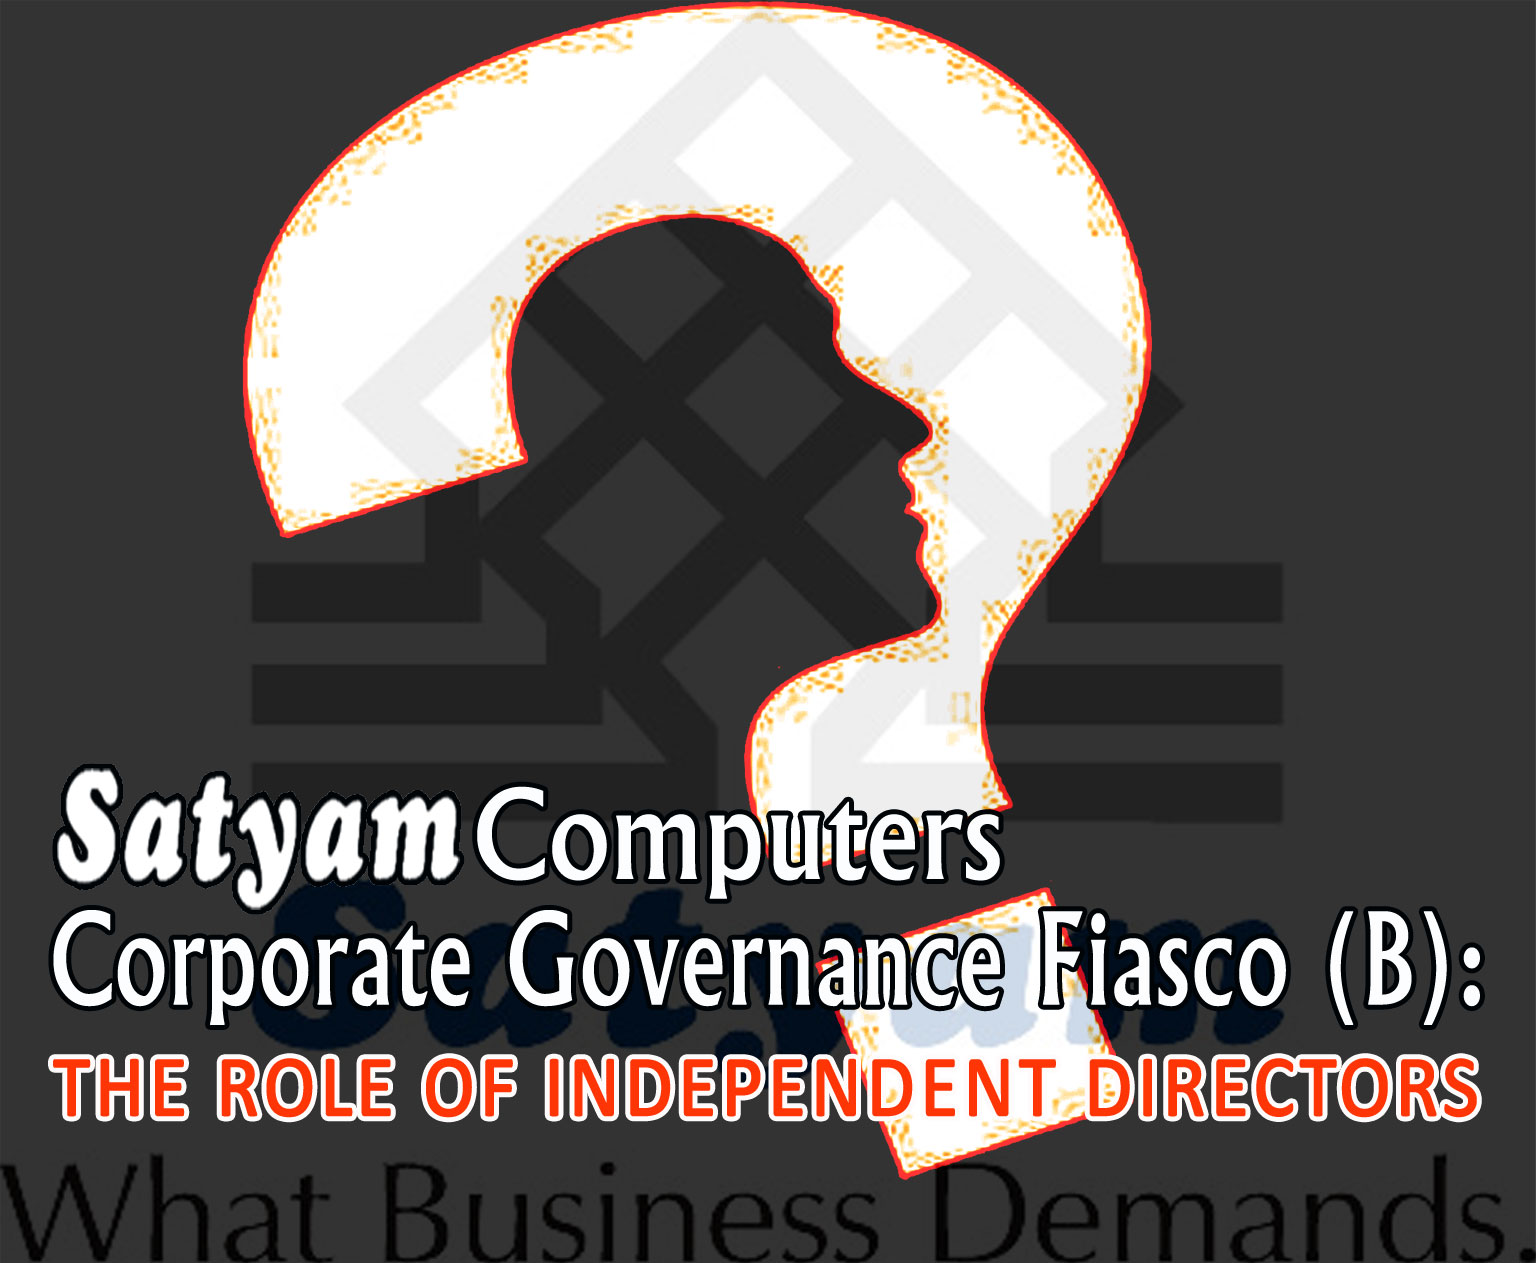 Corporate Governance Issues at Satyam Computers